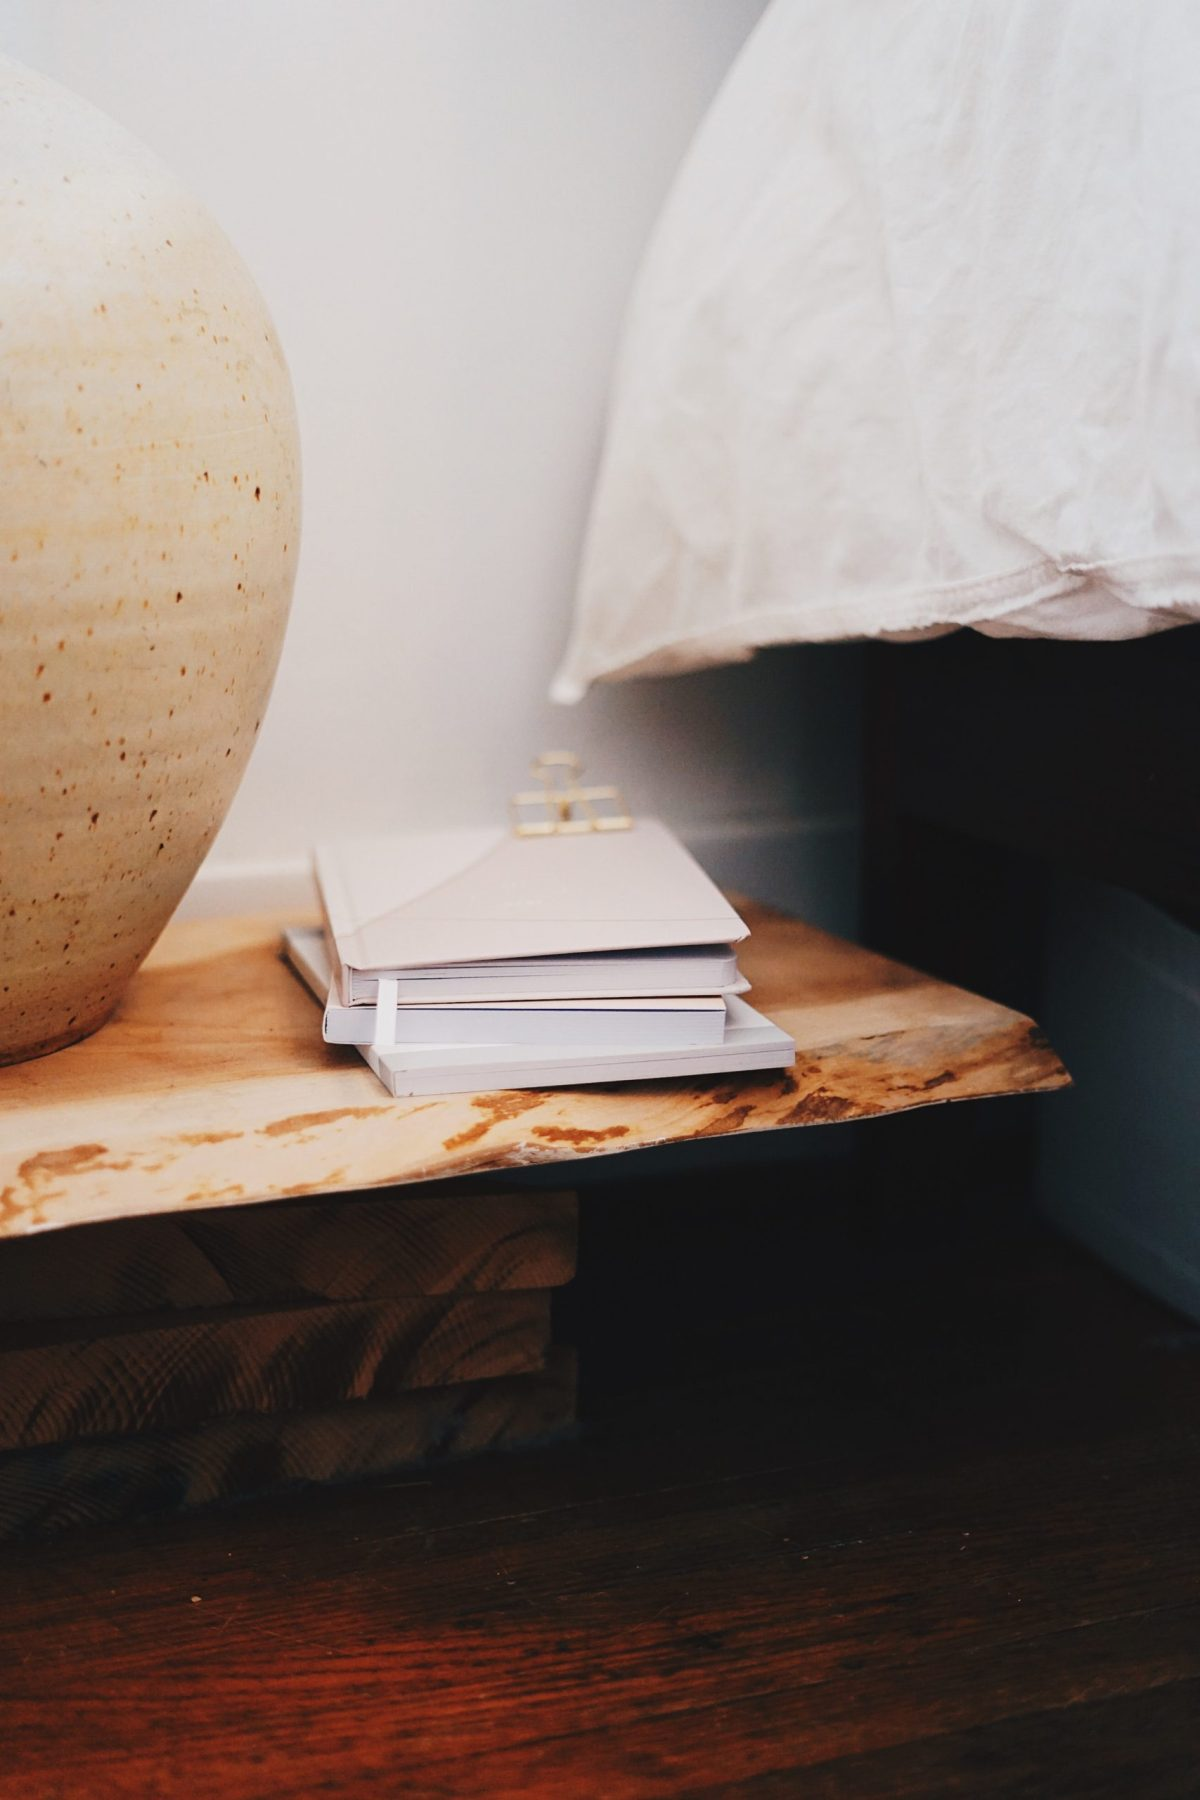 What Happens When You Find an Unsent Letter to Your Ex